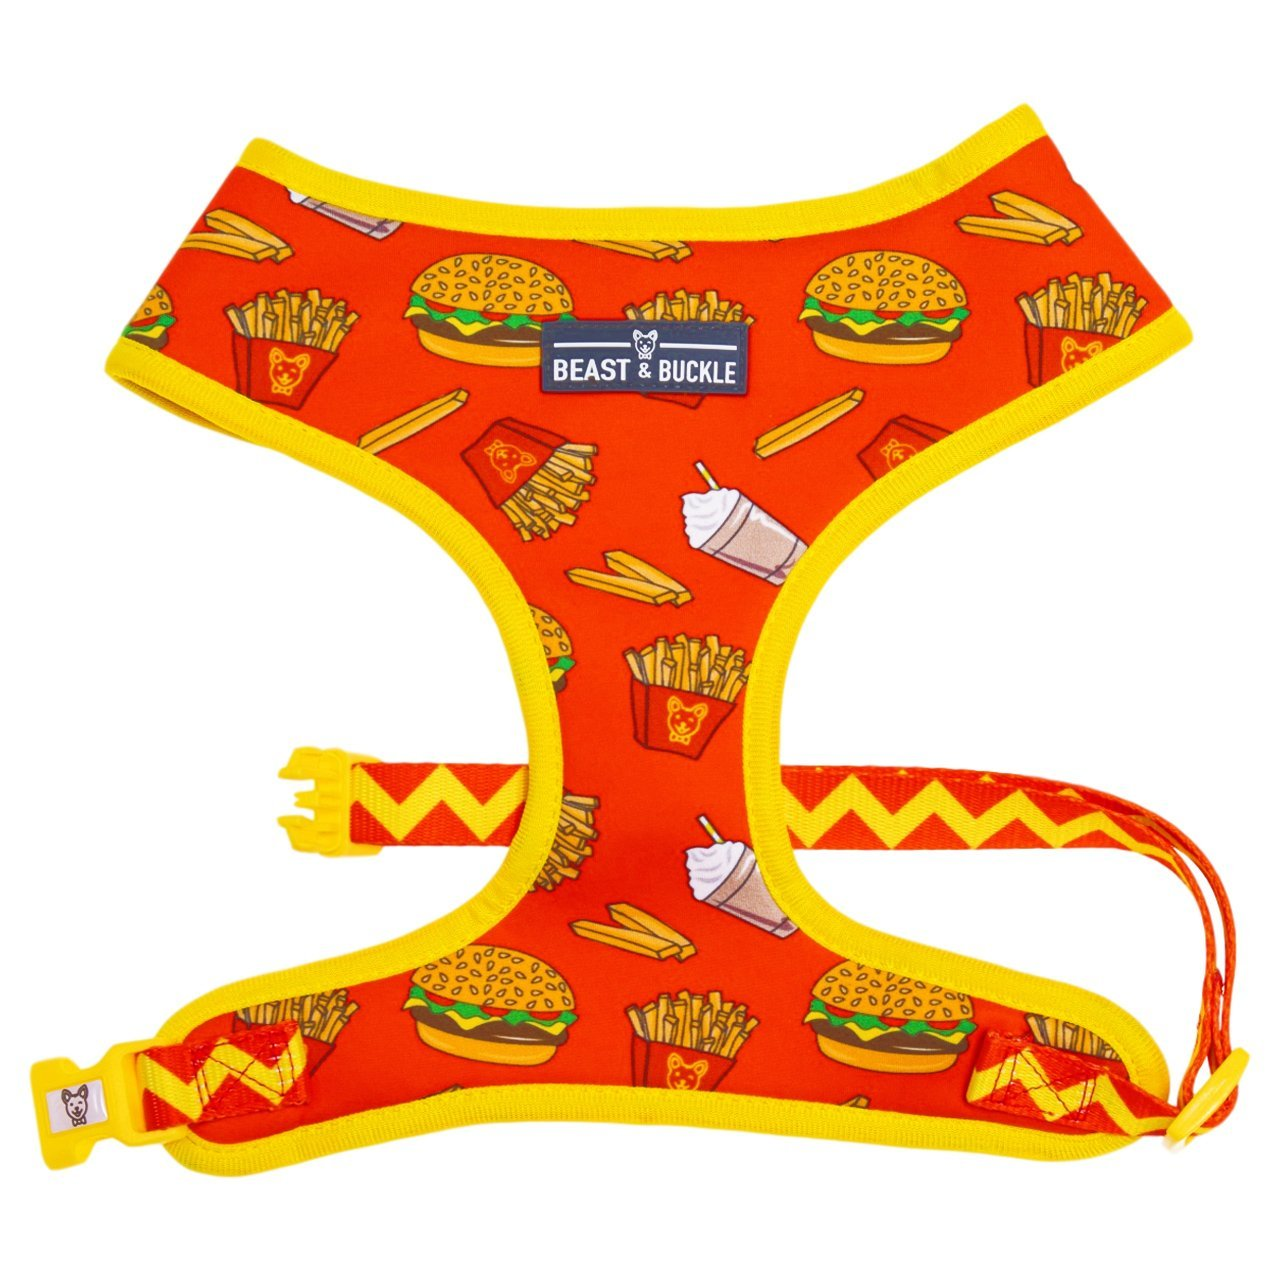 Burgers 'n' Fries Classic Dog Harness - Beast & Buckle